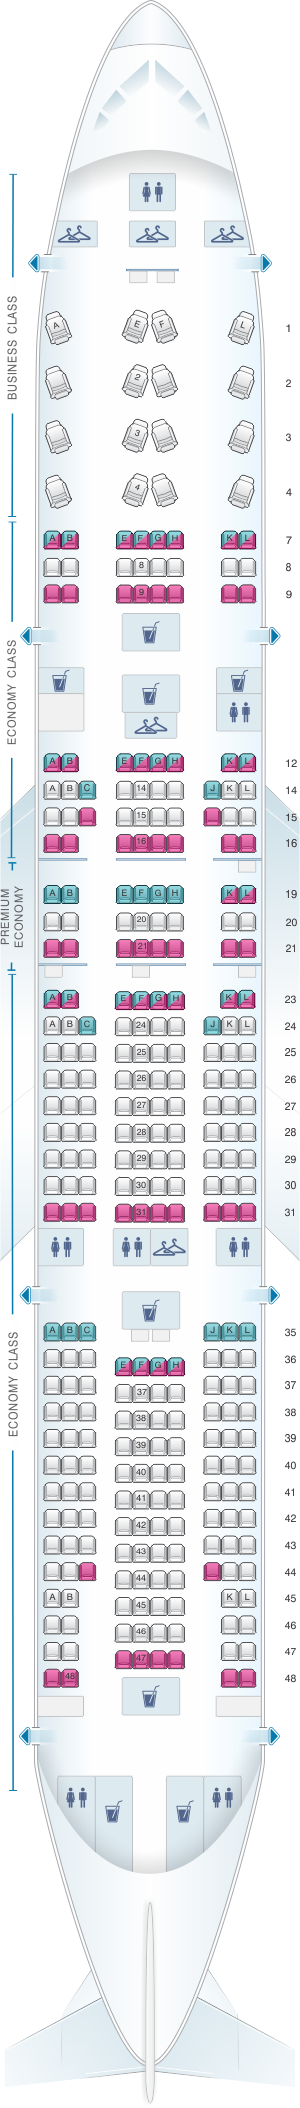 Seat map for Air France Boeing B777 200 International Long-Haul 316PAX